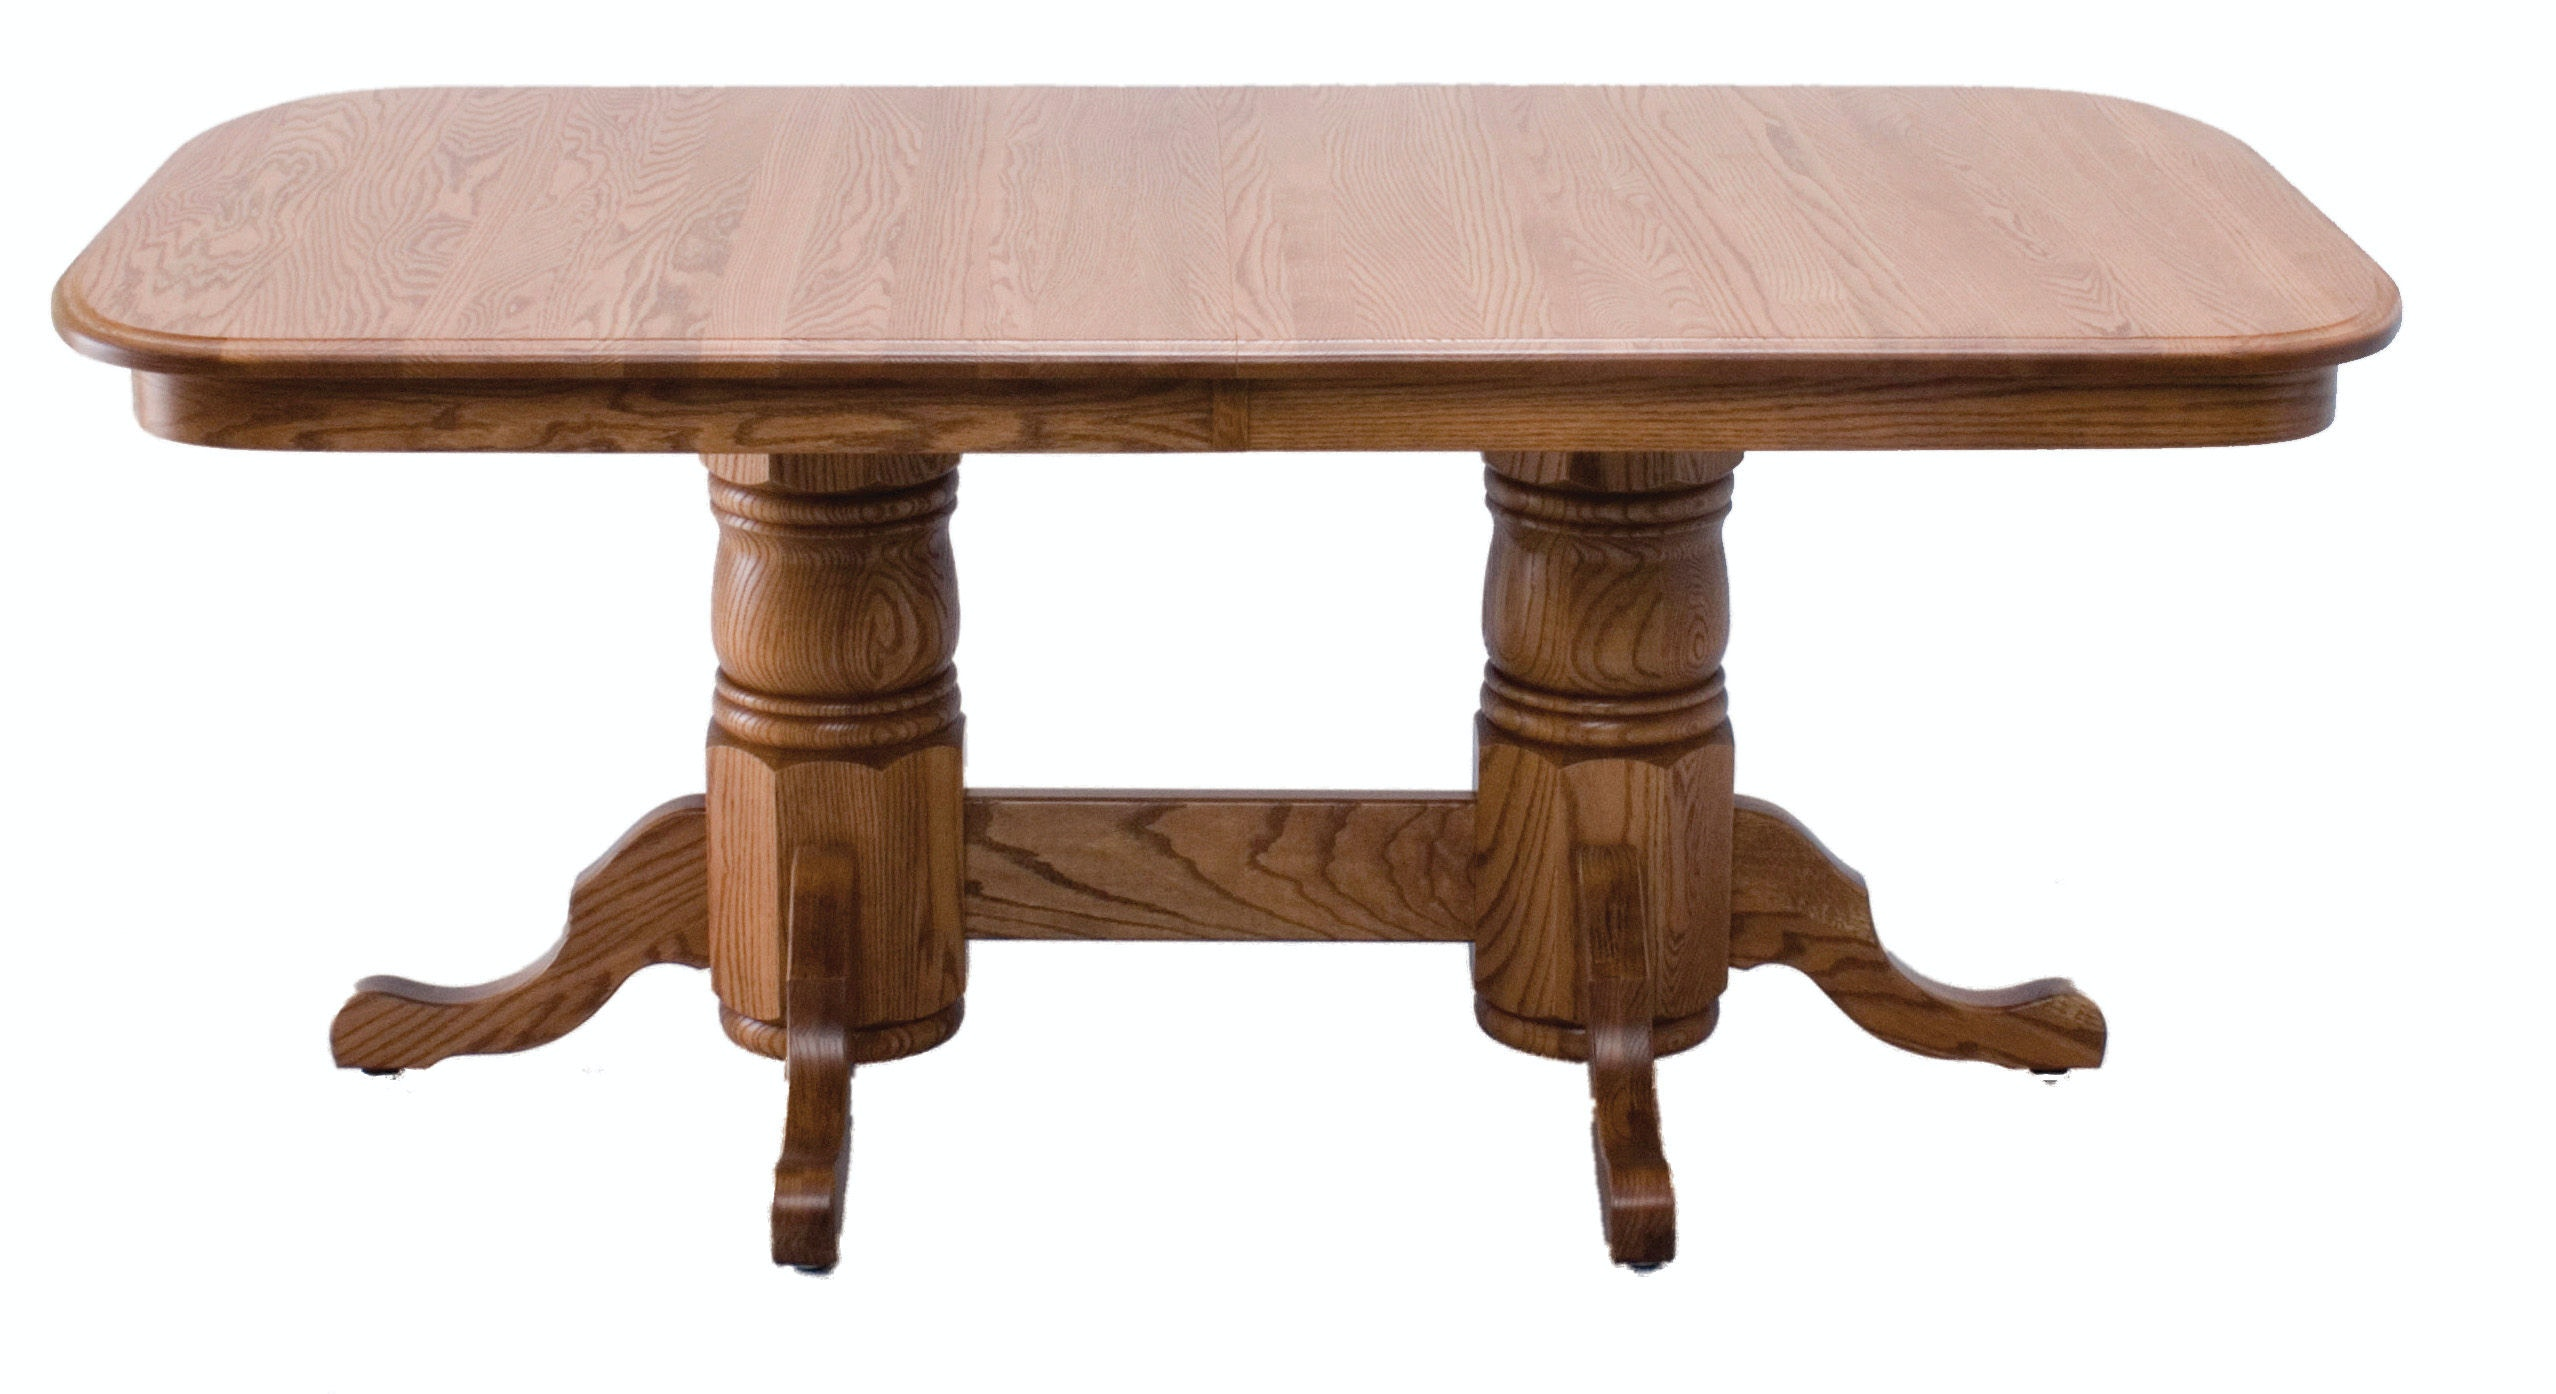 Best Furniture Stores In Northern Va Palettes By Winesburg Dining Room Queen Anne Table Top 4260d0